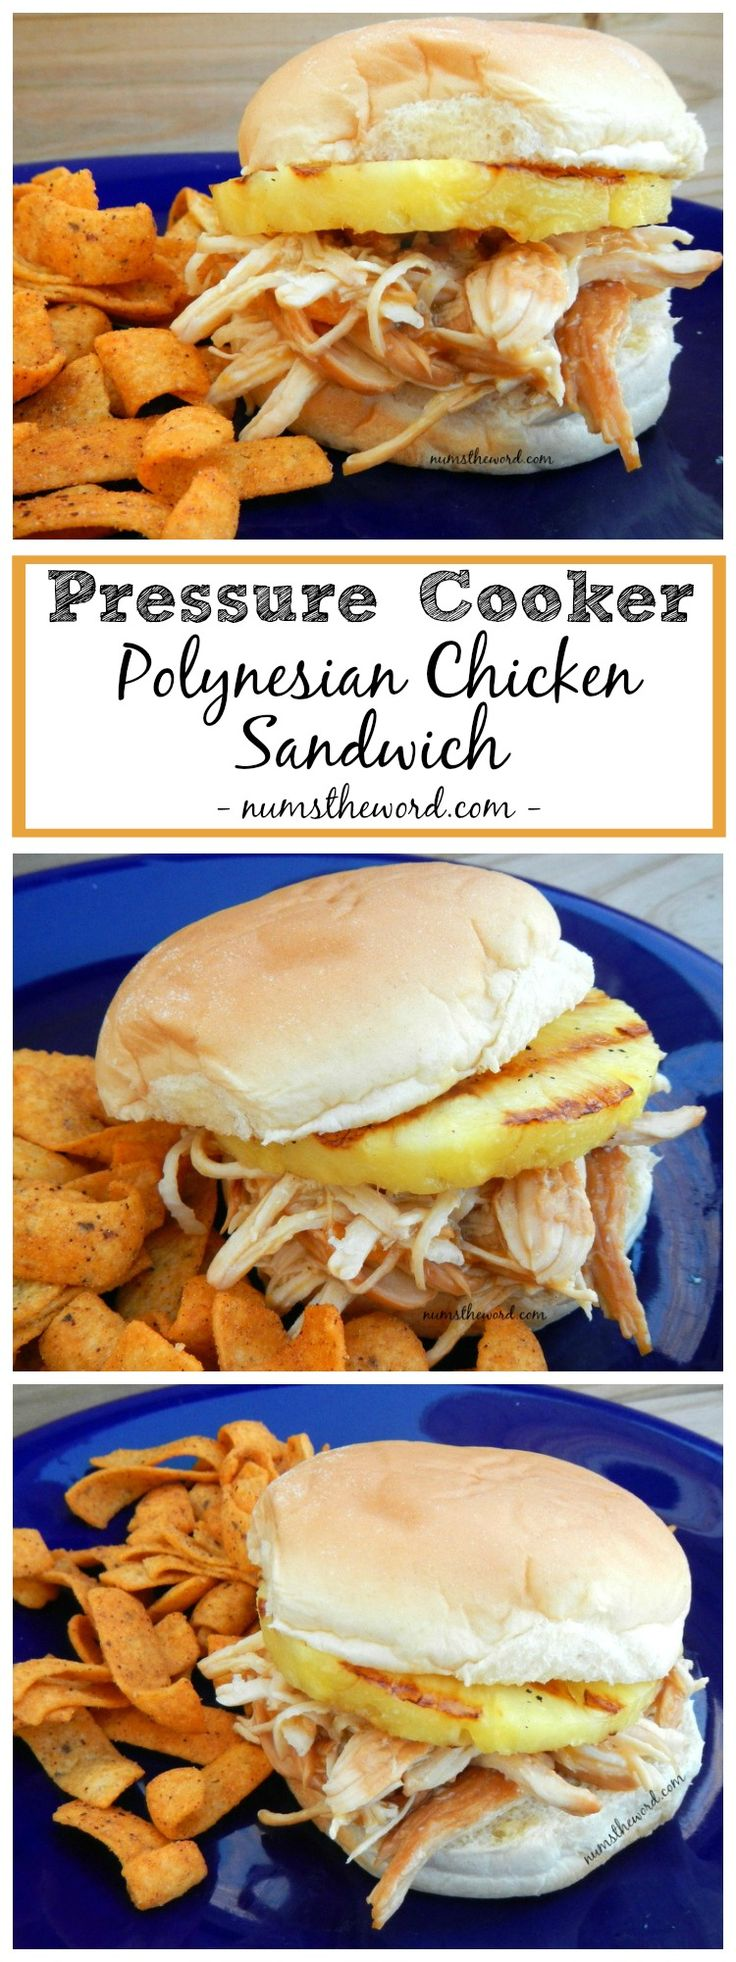 Pressure Cooker Polynesian Chicken Sandwich made with an Instant Pot and ready in 20 minutes.  Tropical Flavors make a delicious dinner!